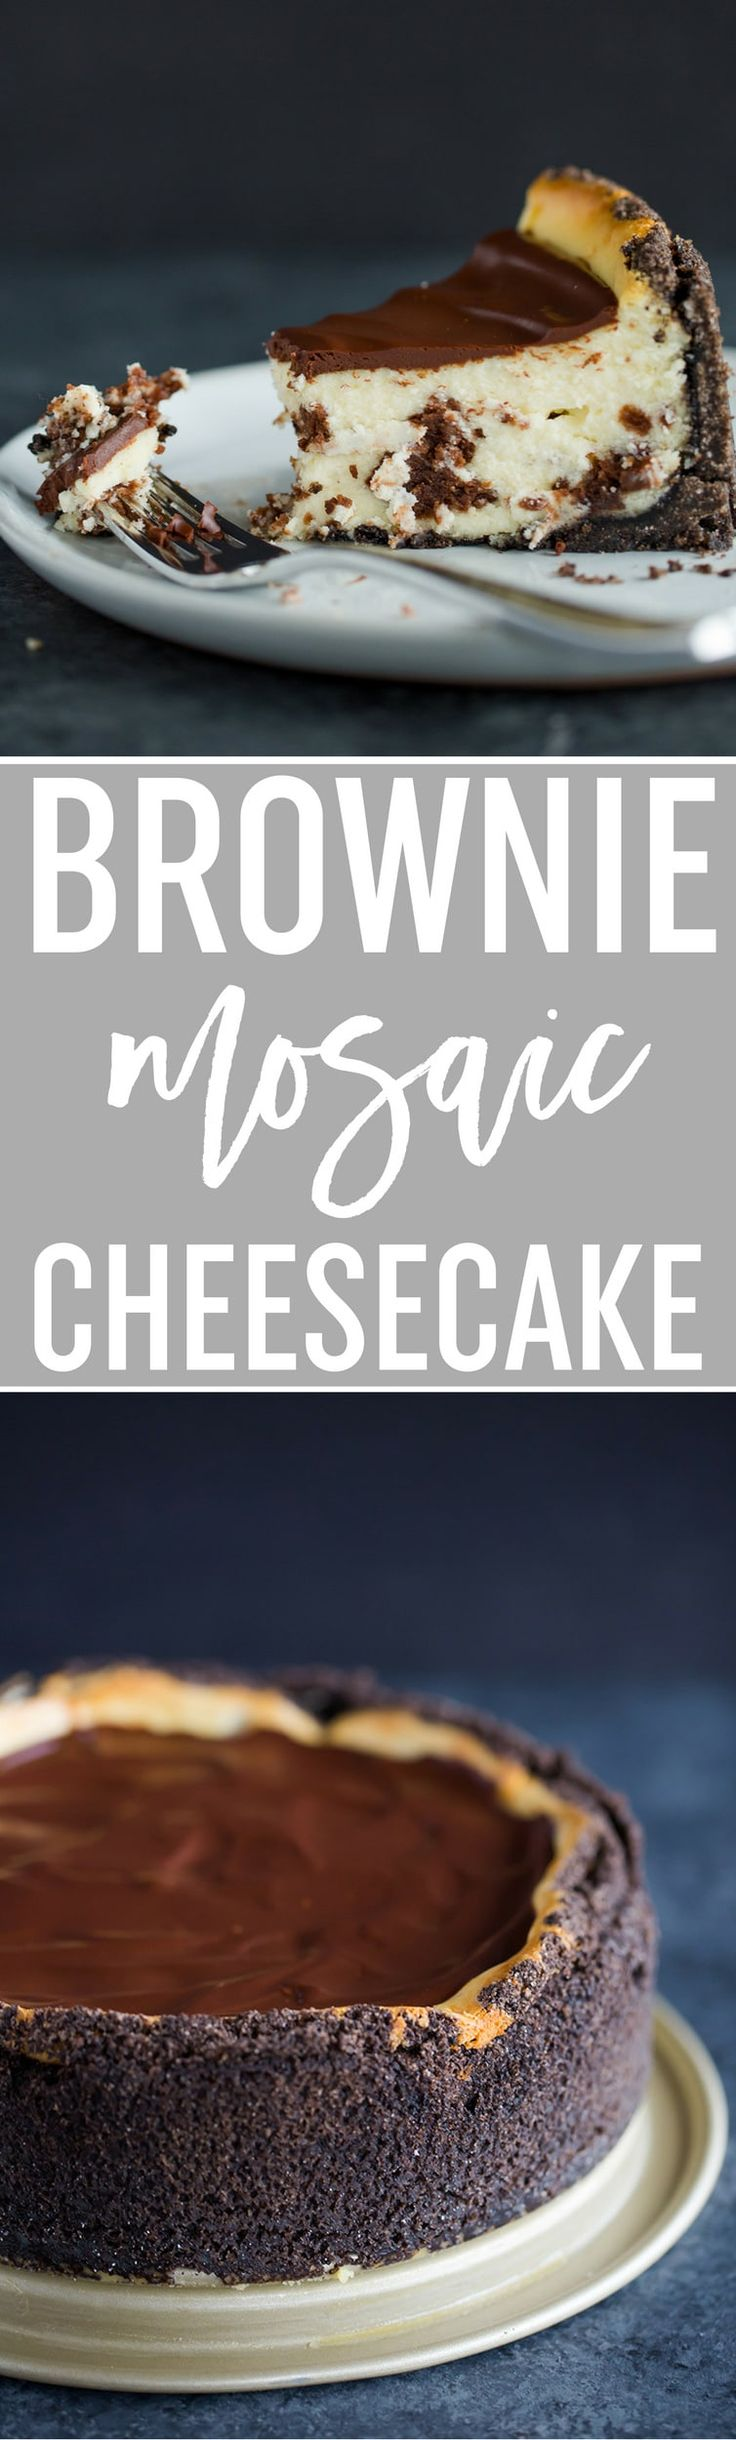 Brownie Mosaic Cheesecake :: A luscious cheesecake with cubes of brownies baked right inside, with an Oreo crumb crust and chocolate ganache topping. ~ via @browneyedbaker